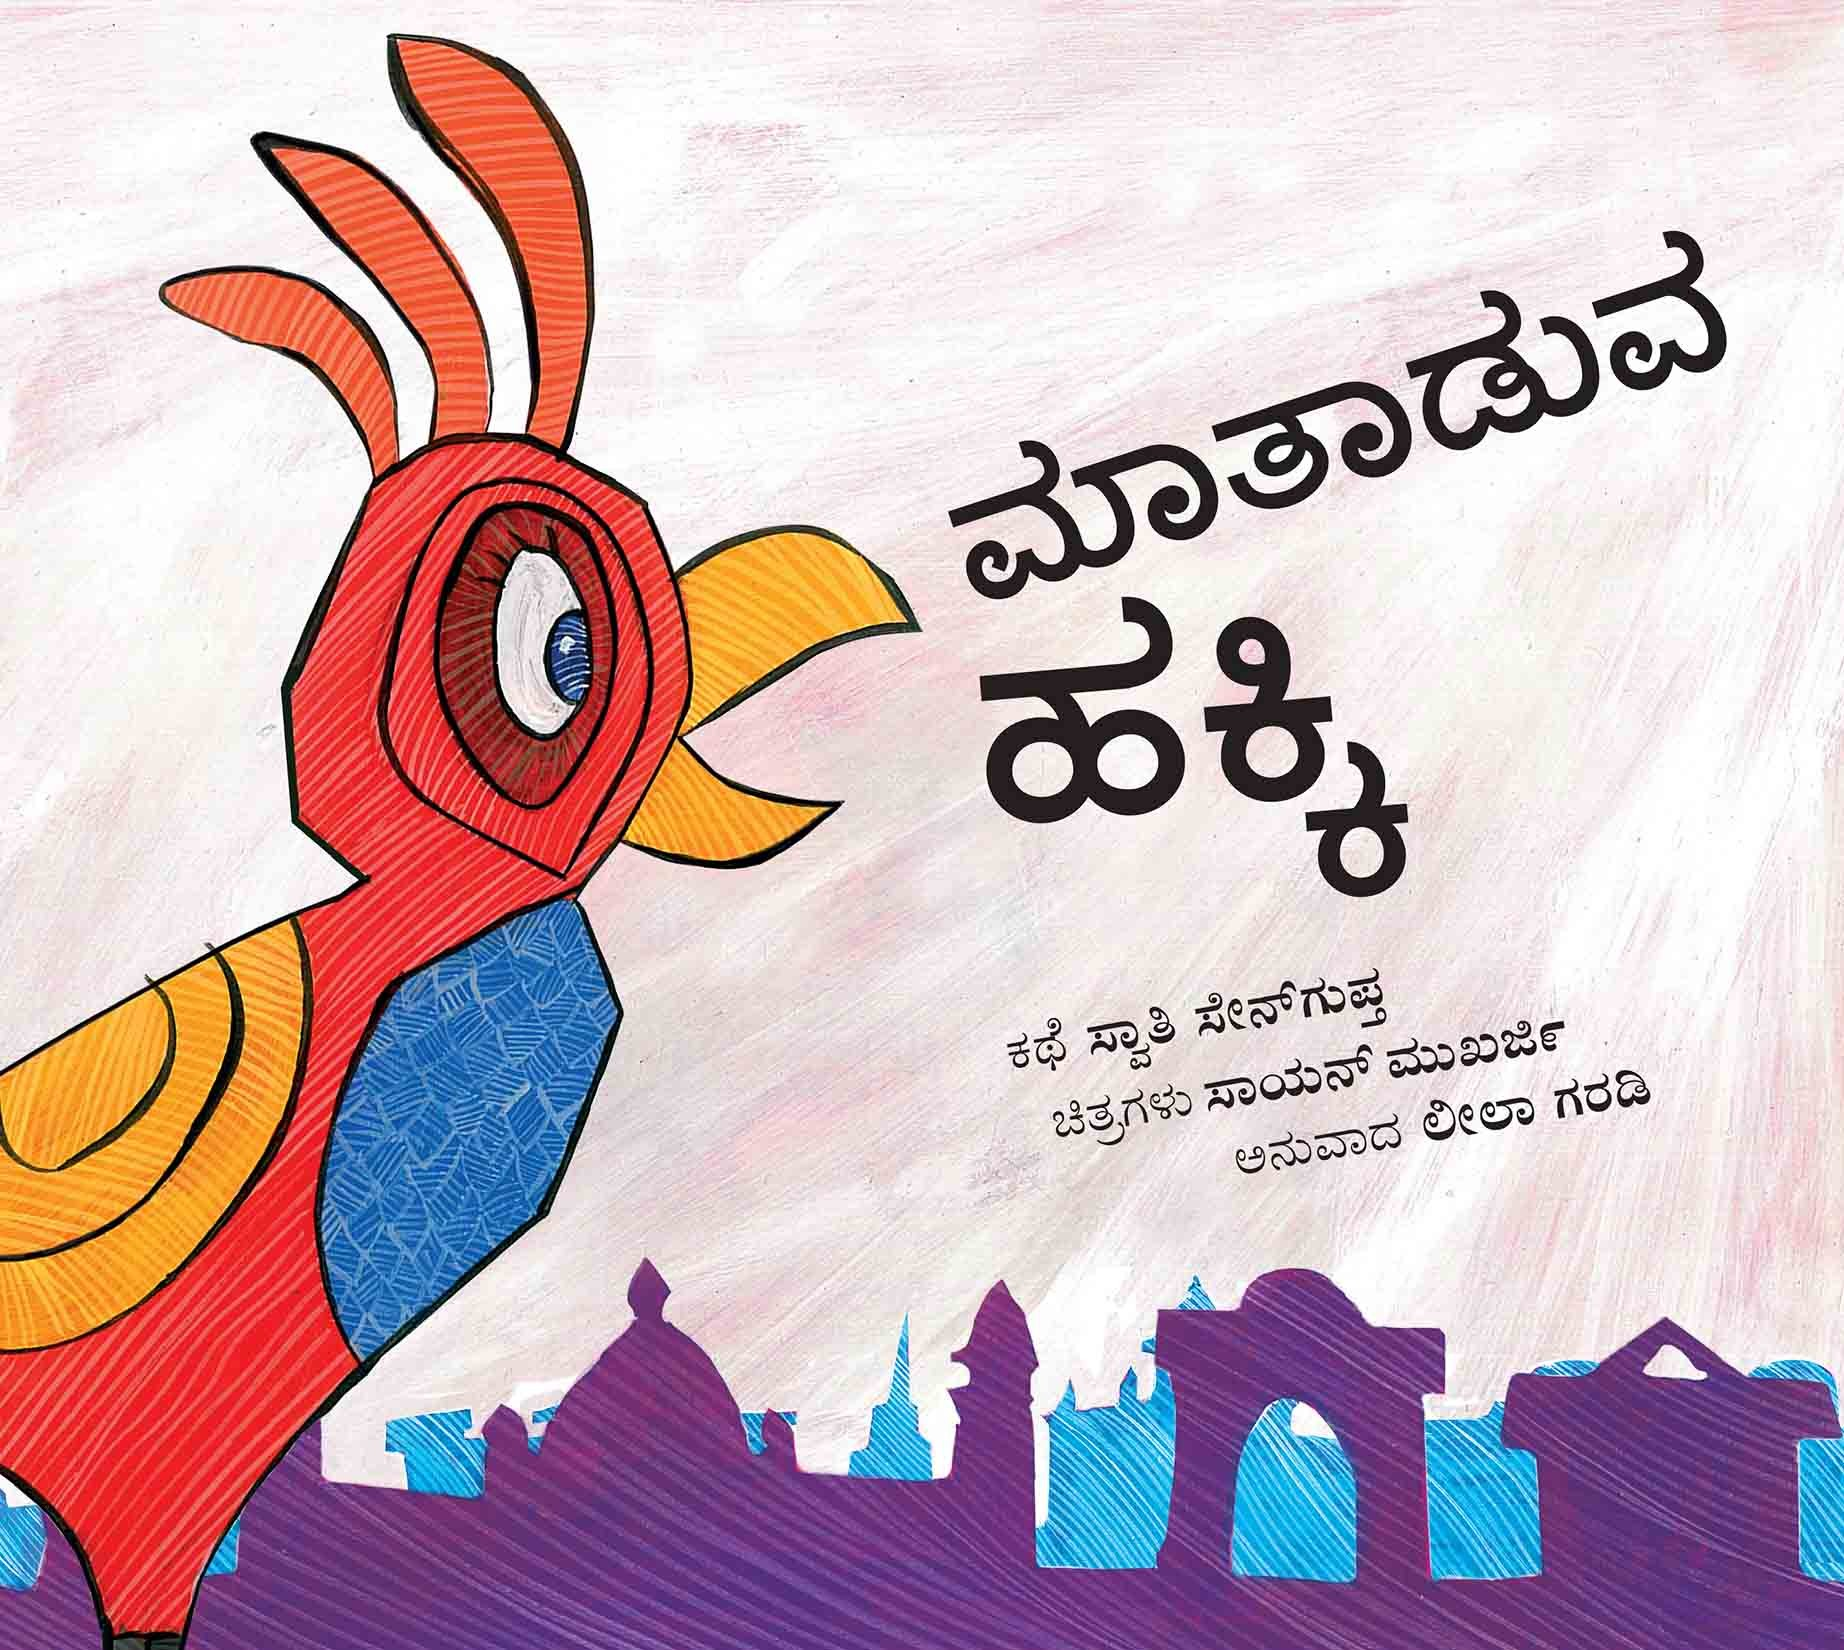 The Talking Bird/Maataaduva Hakki (Kannada)